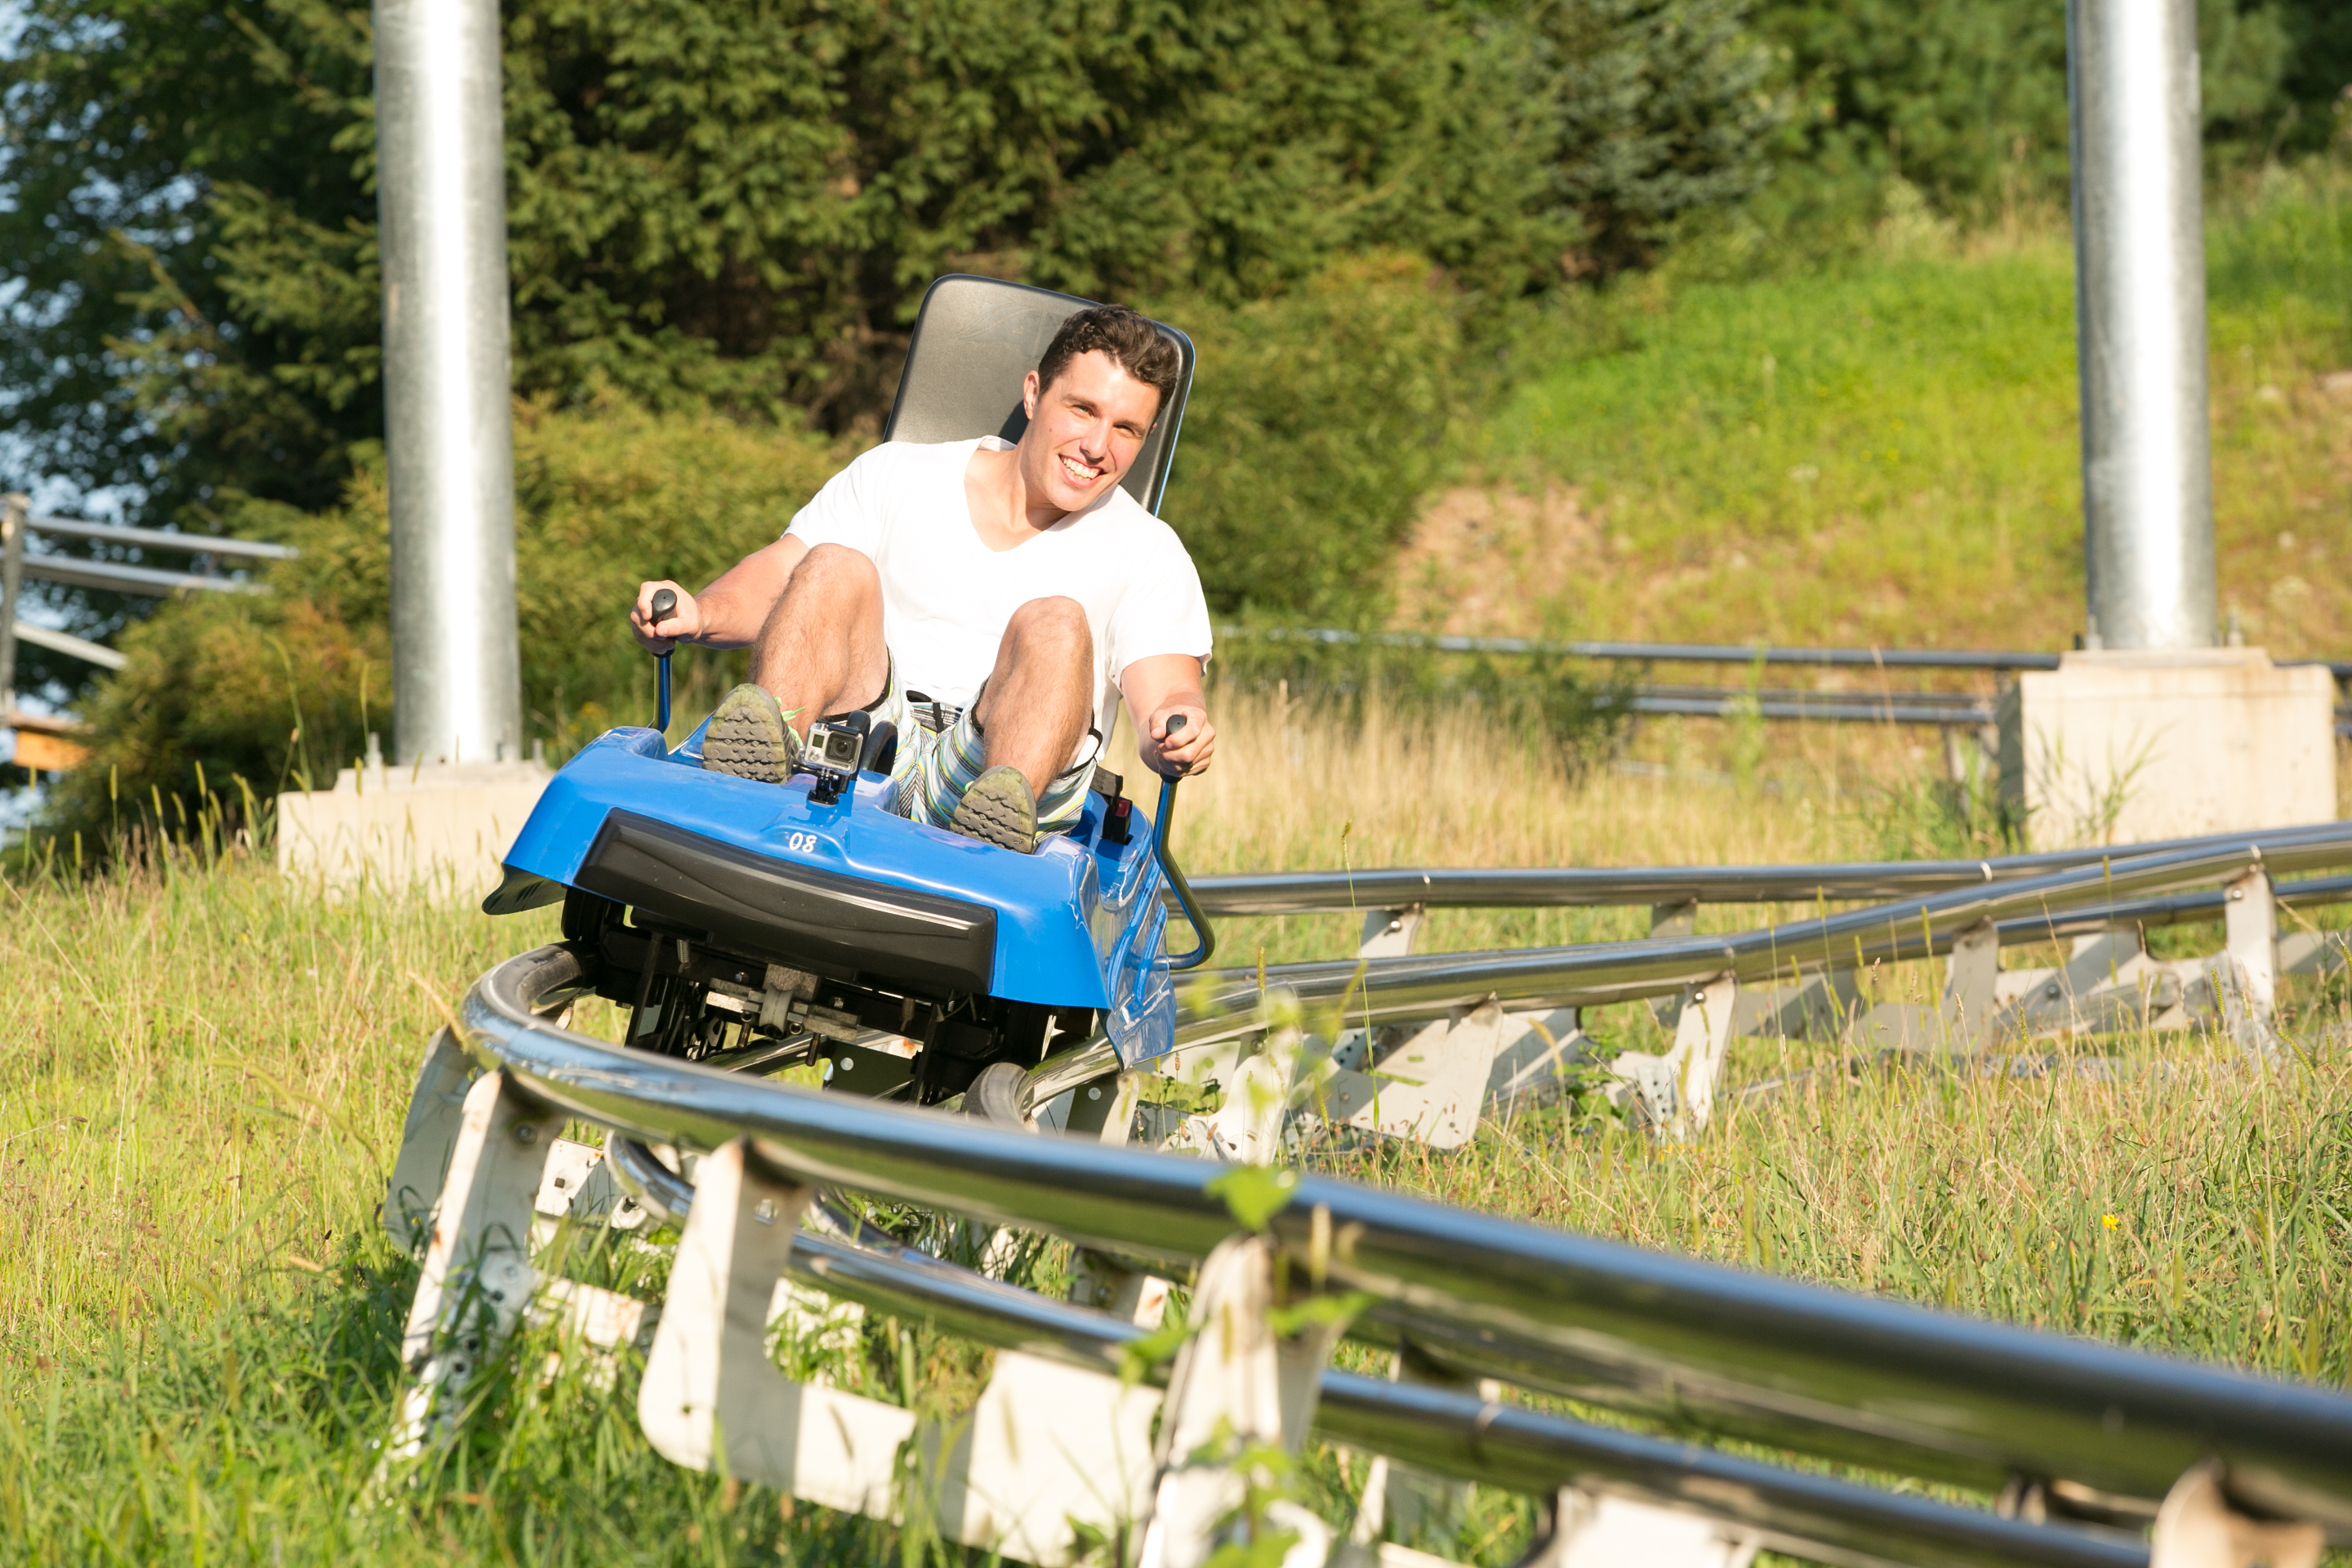 Mountain Coaster Fun at Camelback Mountain